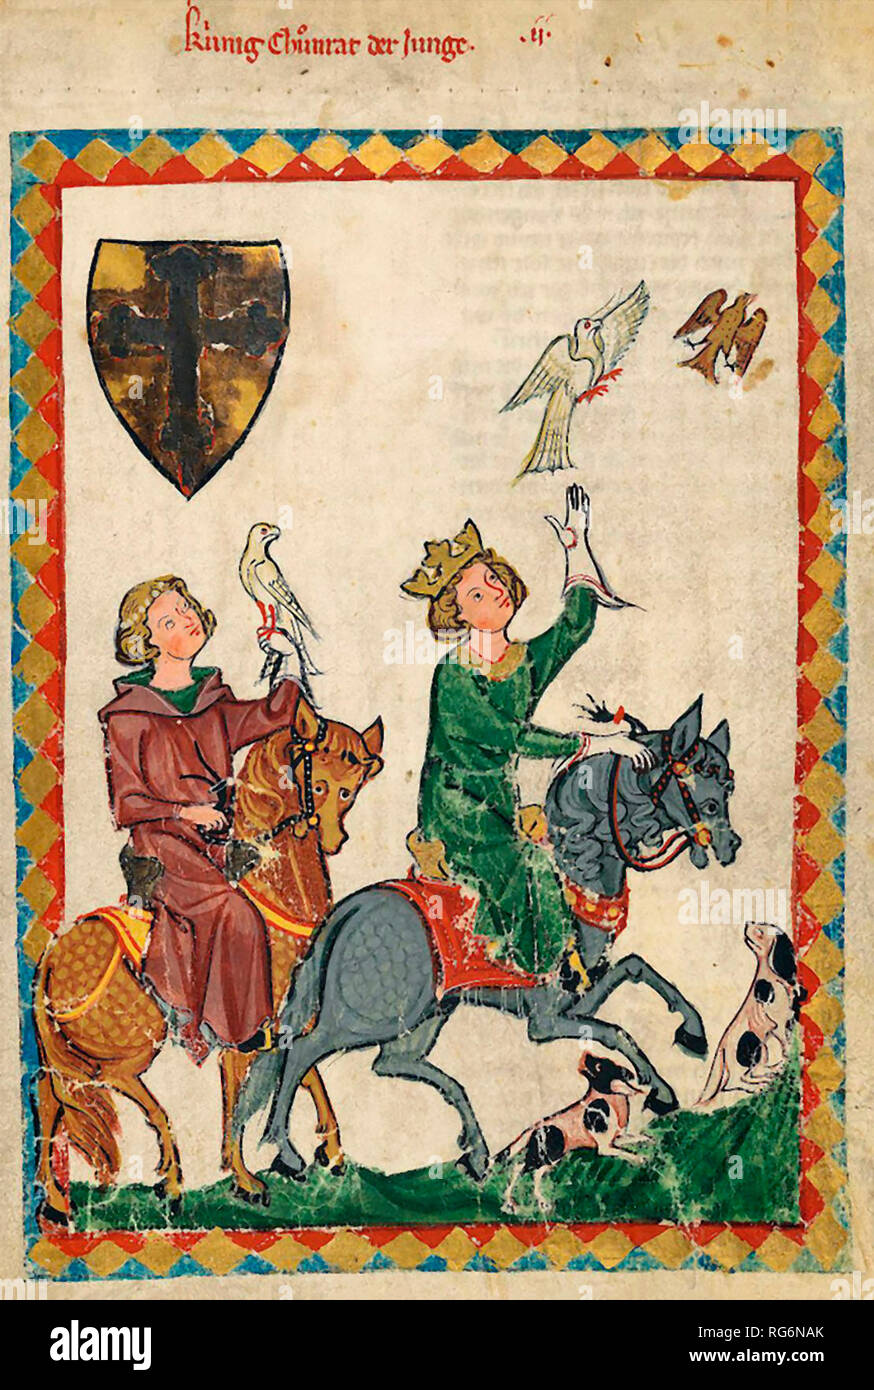 King Conrad the Younger, from the Codex Manesse (Folio 7r), 14th century - Stock Image